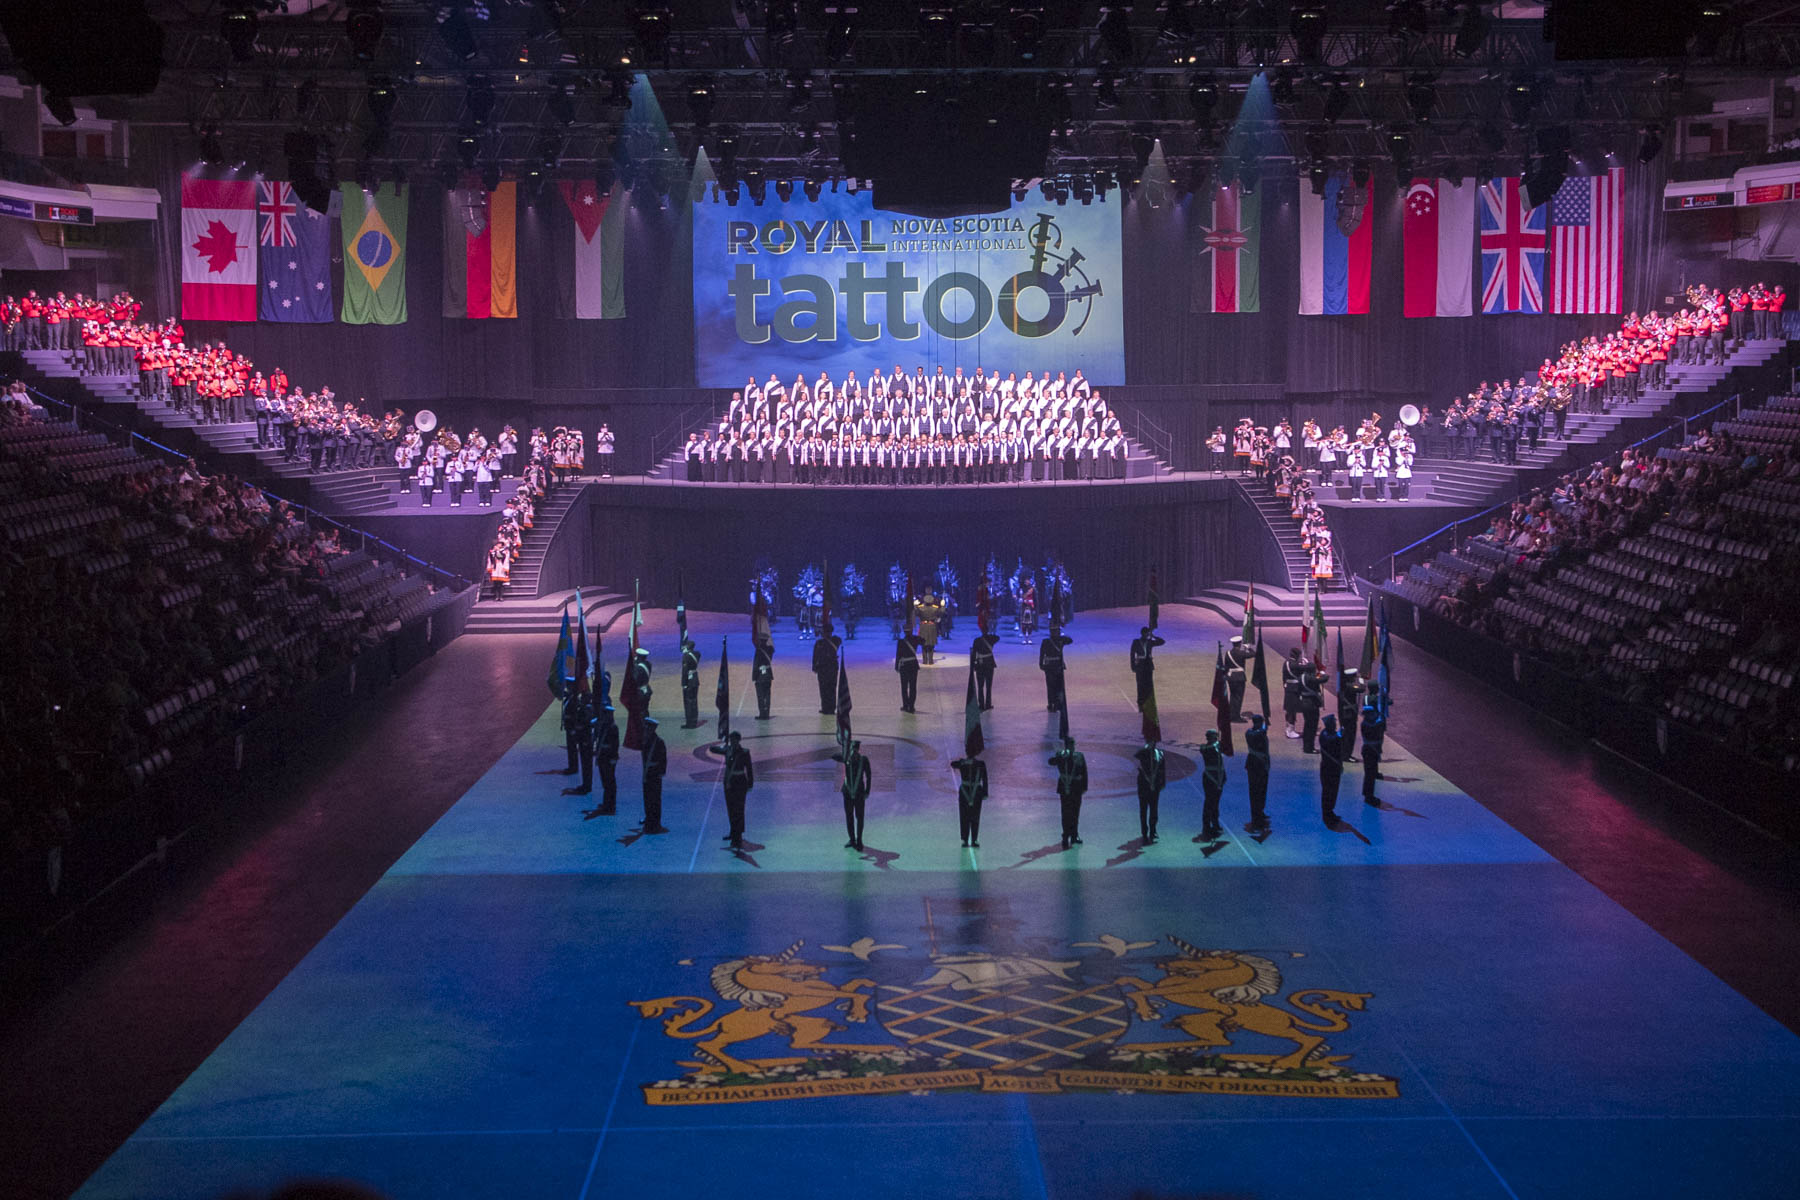 The Royal Nova Scotia International Tattoo is an annual, week-long event.